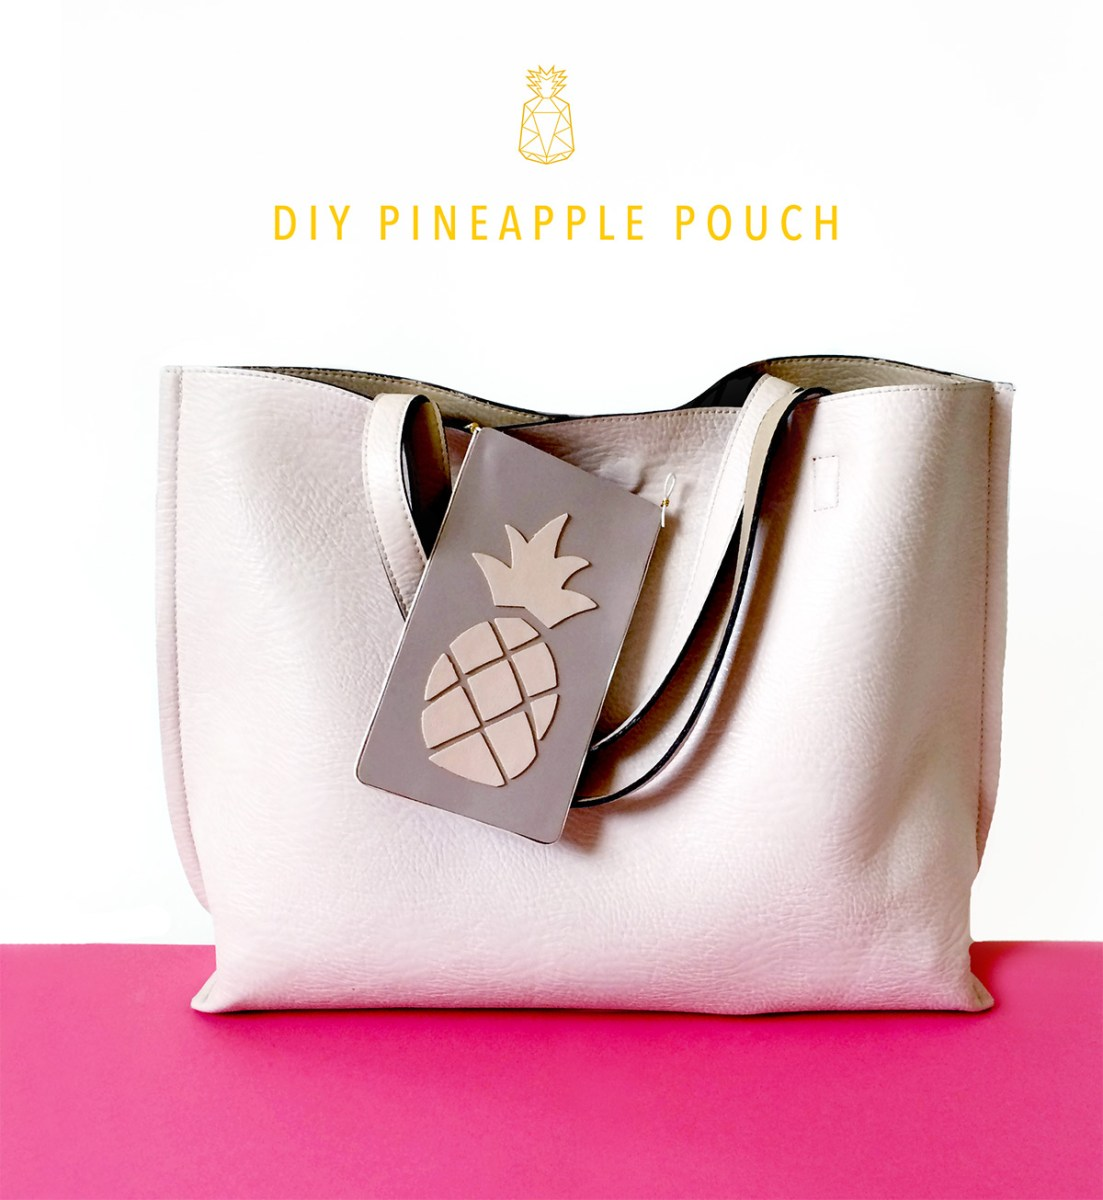 DIY Pineapple Pouch - Part 1